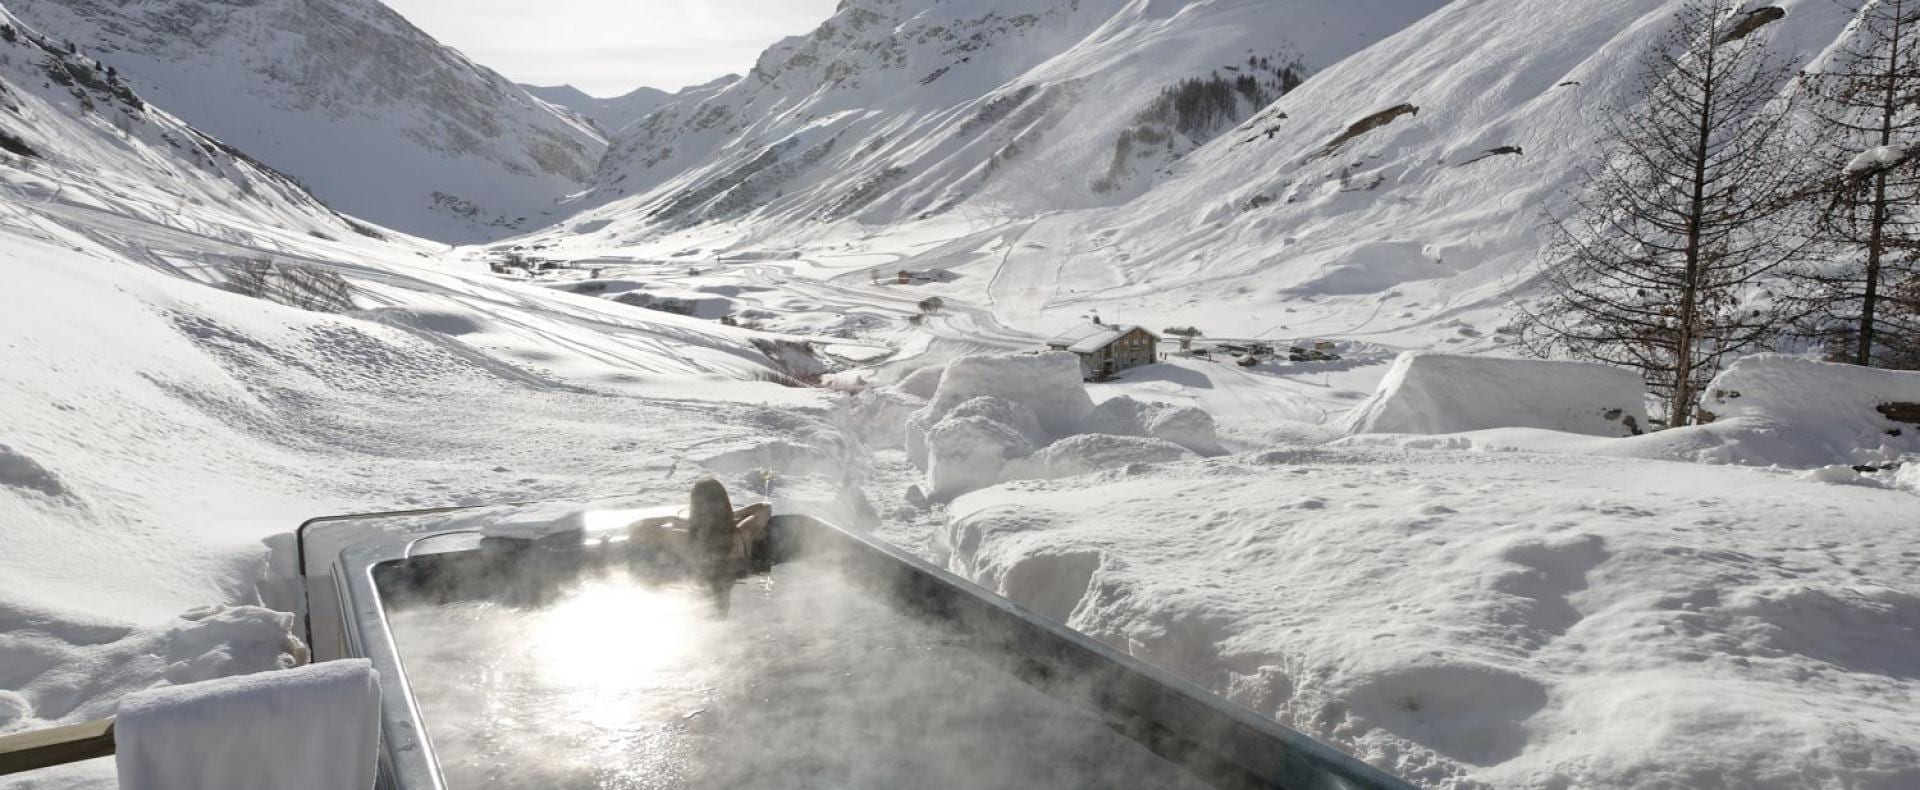 Hot-Tub-Chalet-Le-Chardon-Val-d'Isere-Ultimate-Luxury-Chalets-UltraVilla